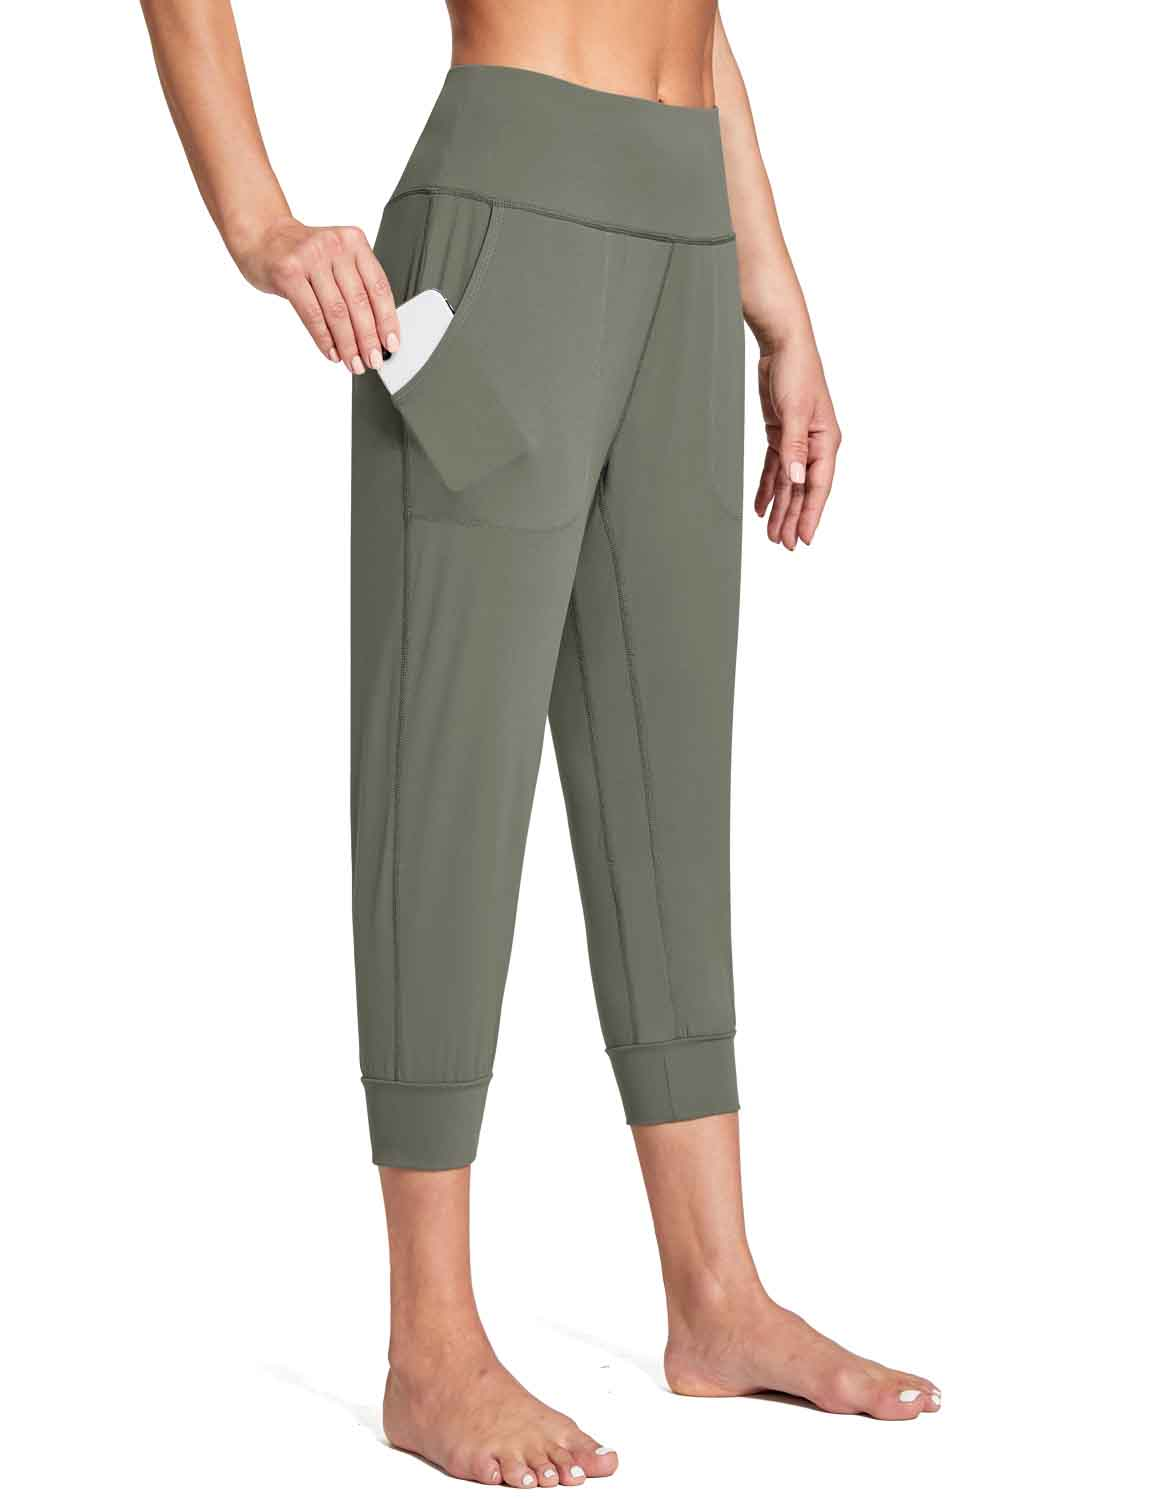 Baleaf Women's High Rise Soft Cropped Workout Pockets Joggers grey front